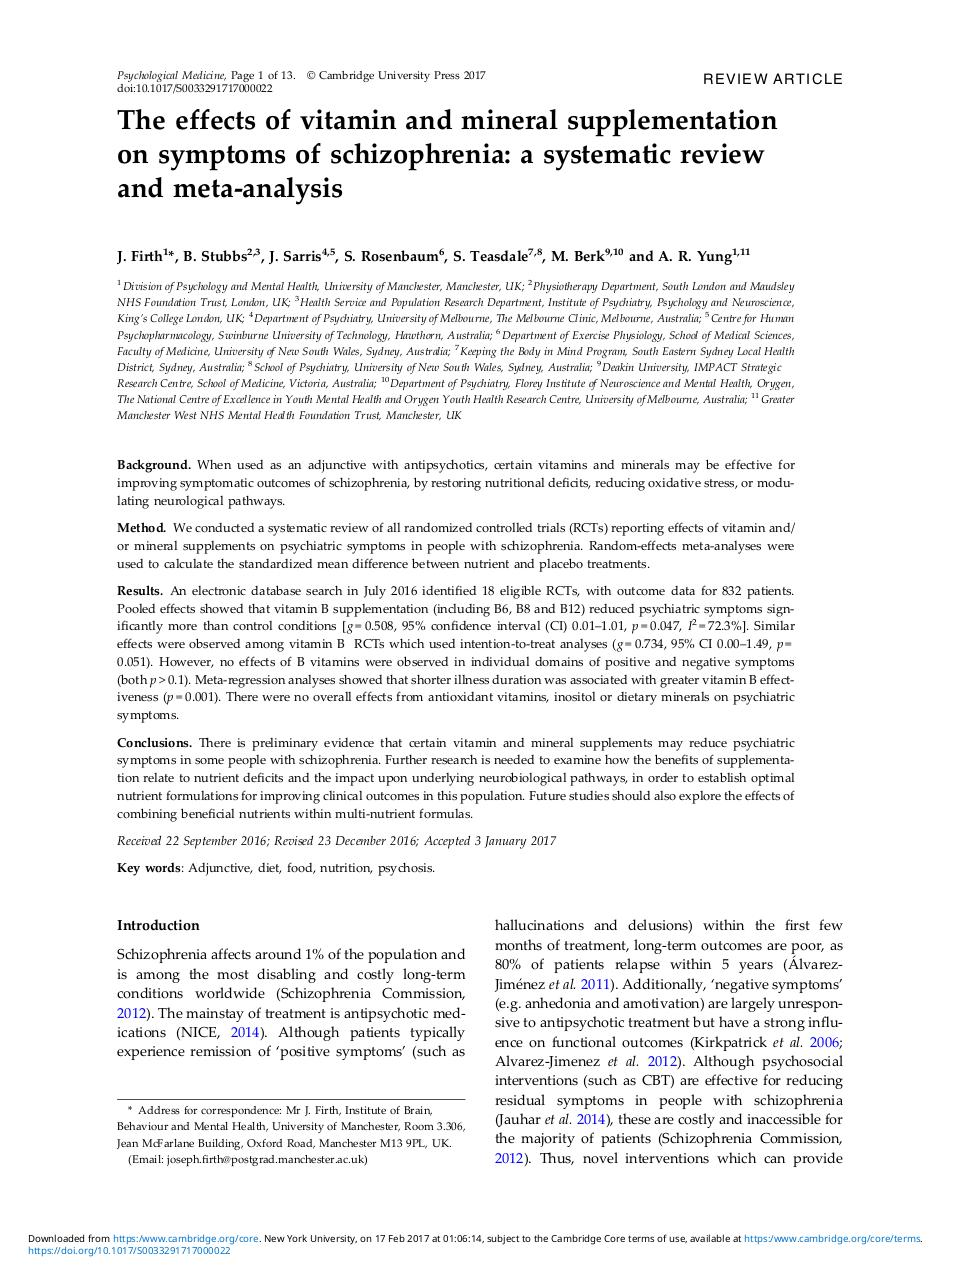 B vitamins and schizophrenia.pdf - page 1/13